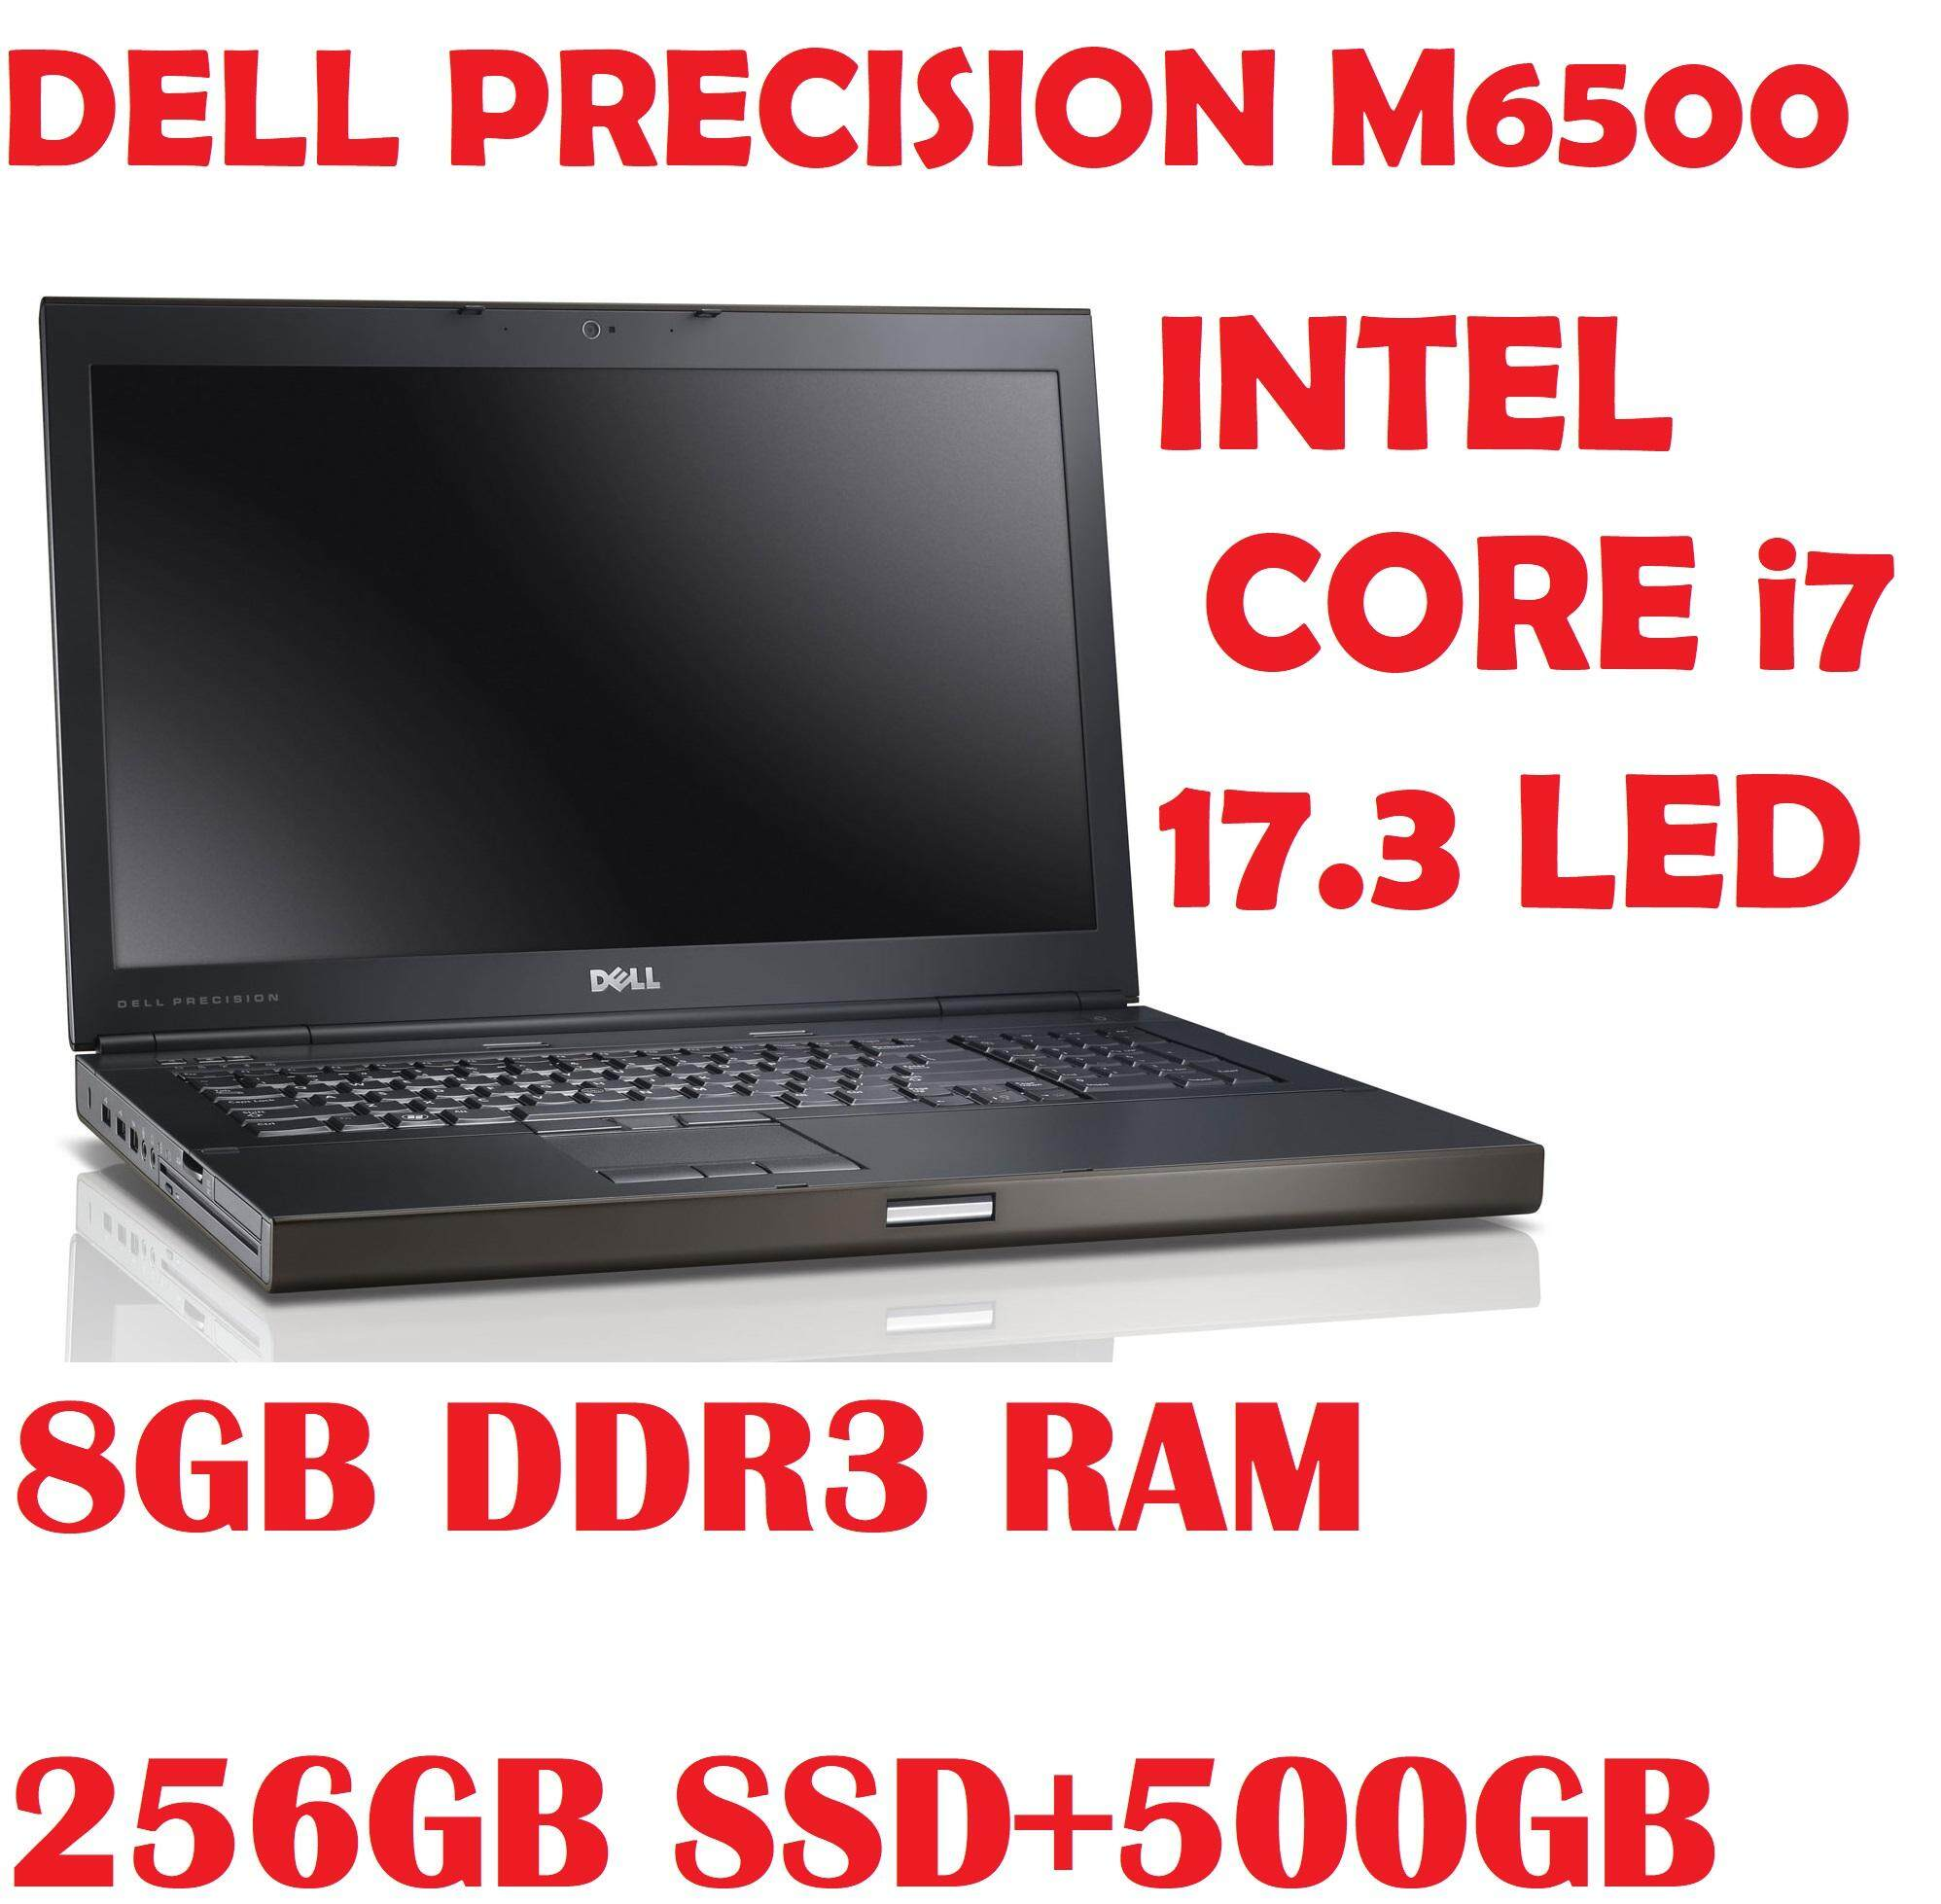 DELL PRECISION M6500 INTEL CORE i7 Q740 1.73 GHZ/8GB DDR3 RAM/256GB SSD+500GB DRIVE /DVD RW/17.3  LED SCREEN/AMD RADEON HD5800 SERIES GRAPHIC CARD/WIN 7 PRO Malaysia